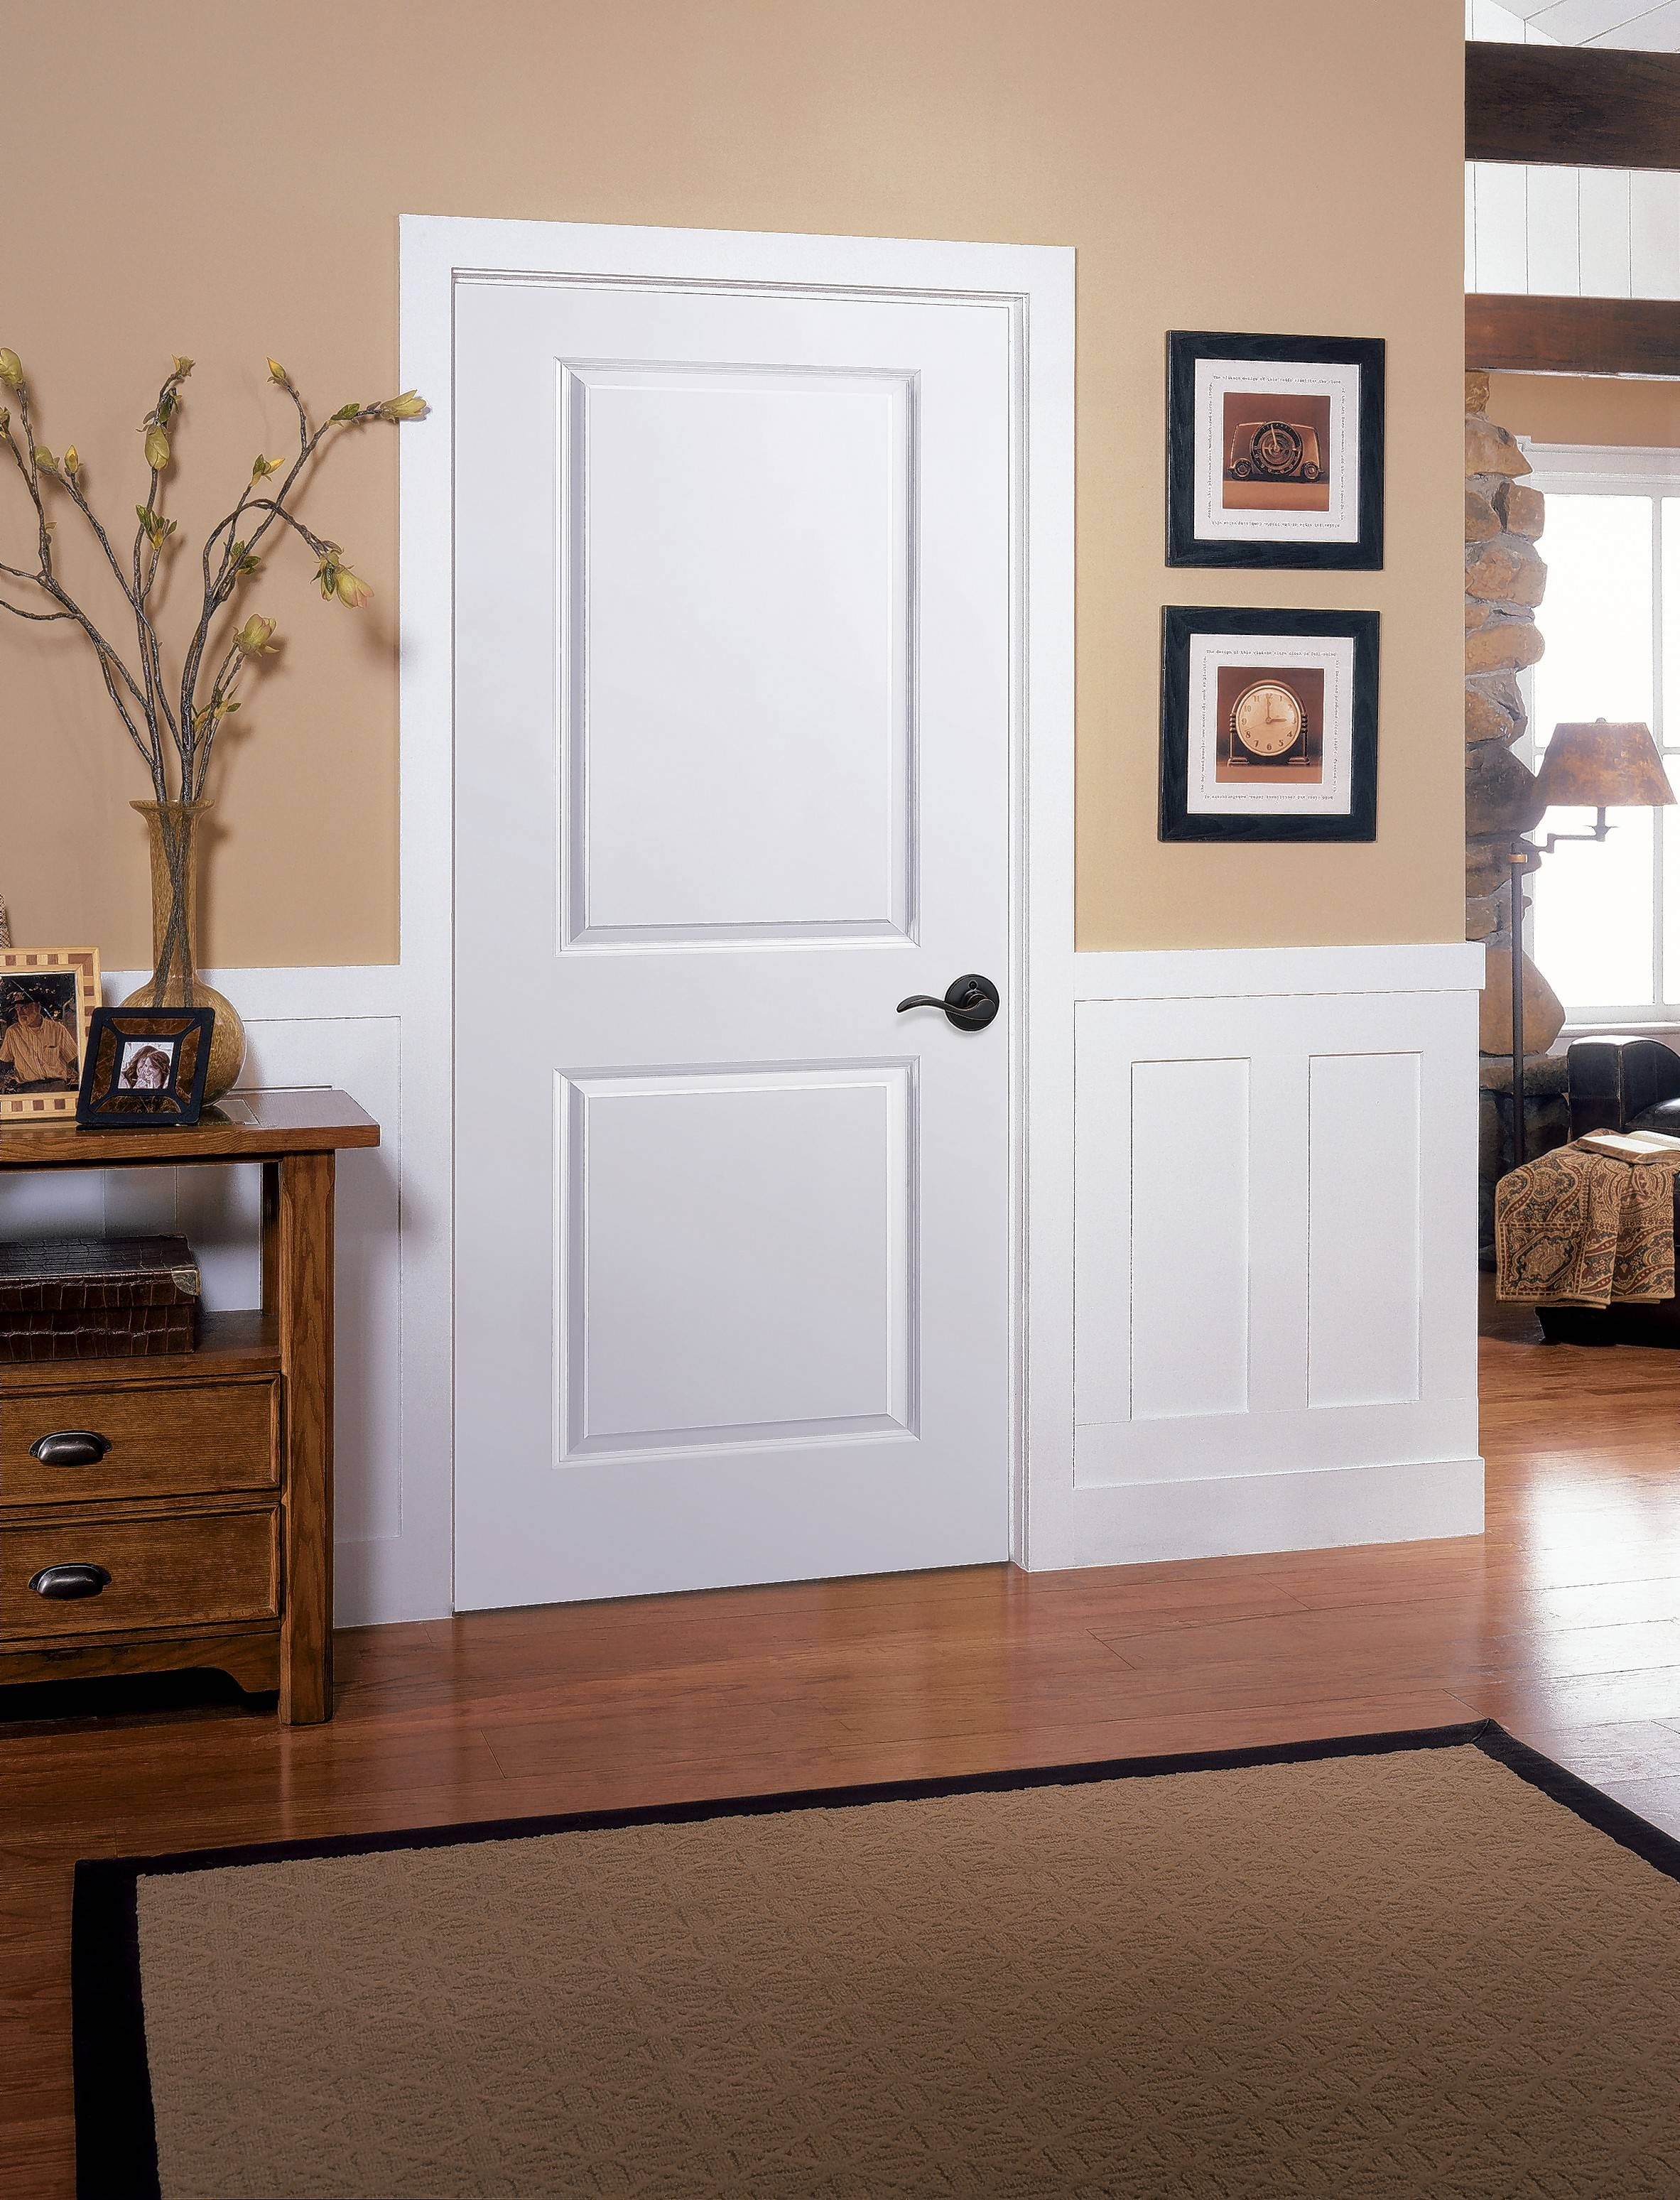 HomeStory Of Chicago Would Recommend Updating Your Homeu0027s Décor By  Replacing Your Interior Doors With Two